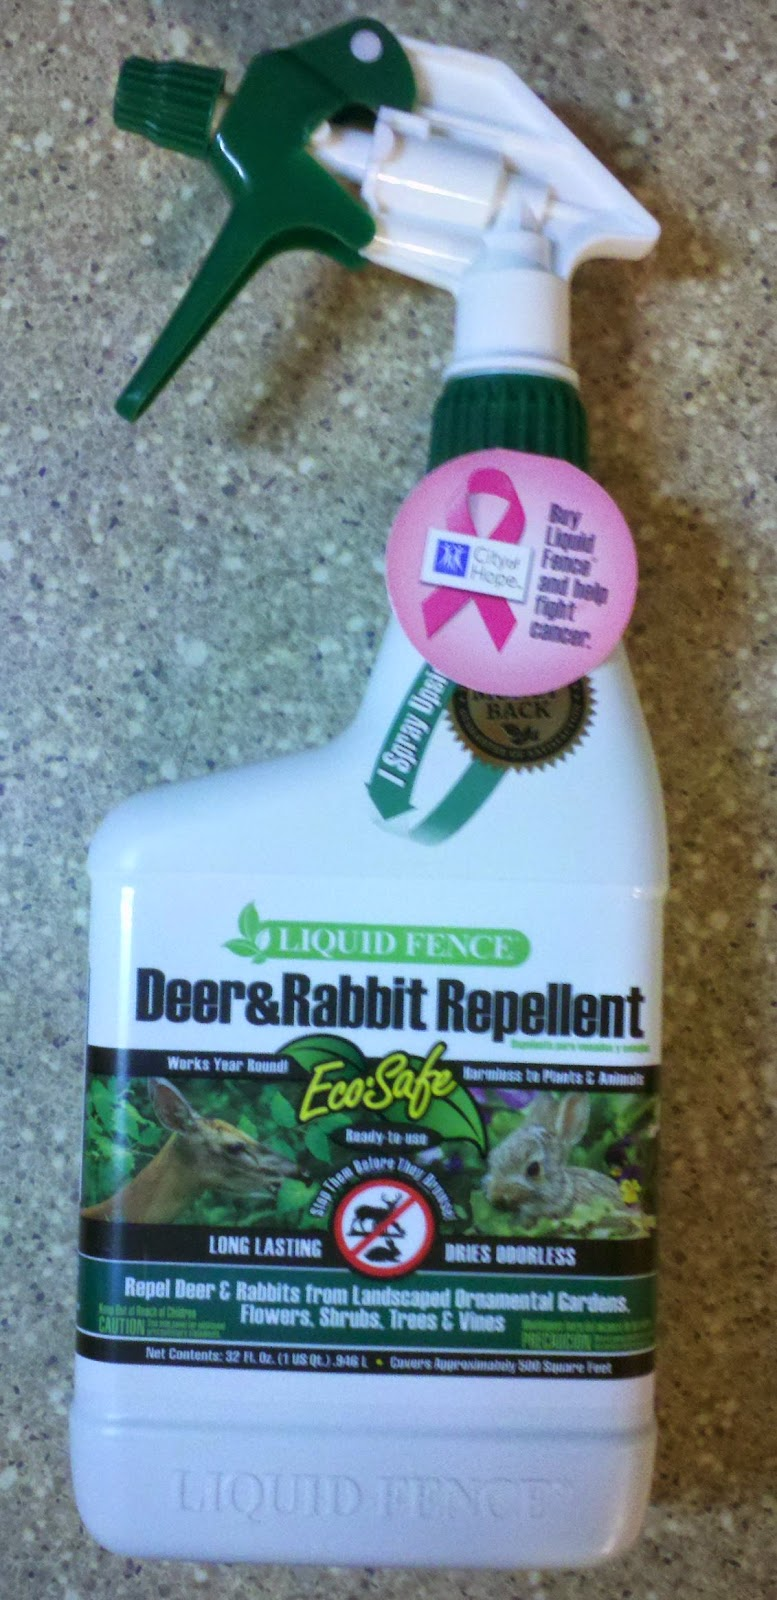 Liquid Fence Deer & rabbit repellent, all natural pest repellent for garden